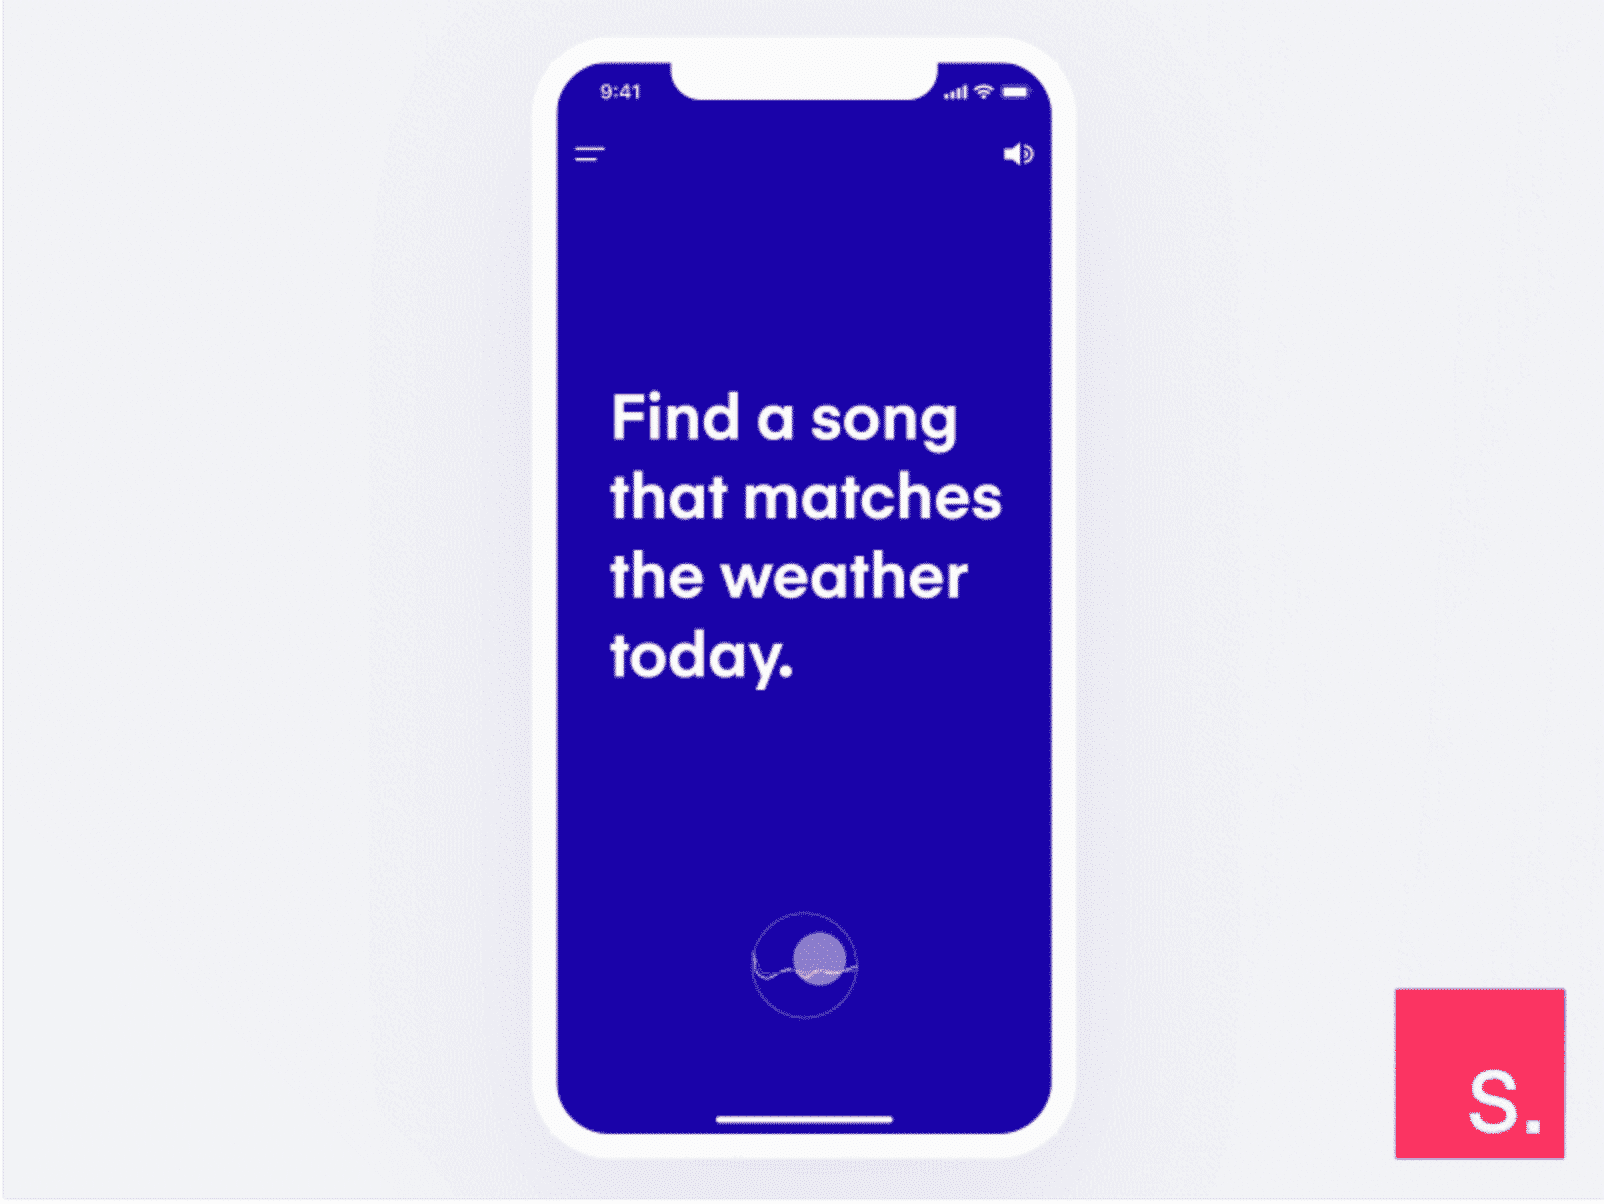 Voice Search inVision studio Free